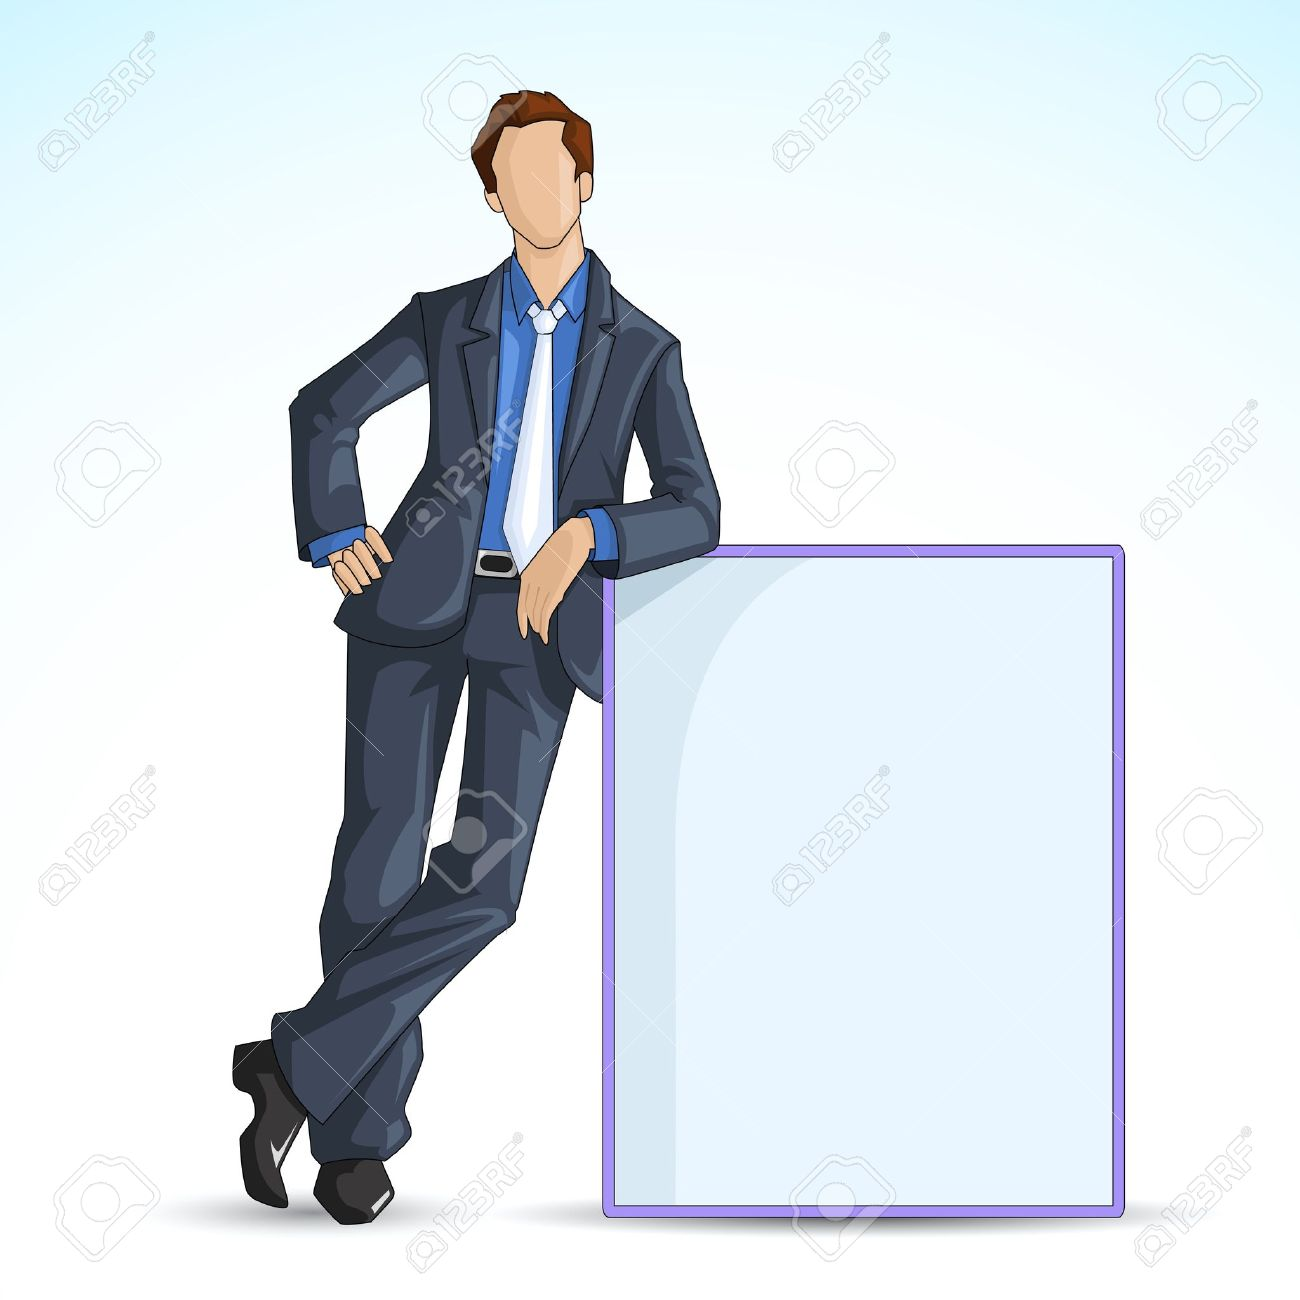 Leaning Clipart.